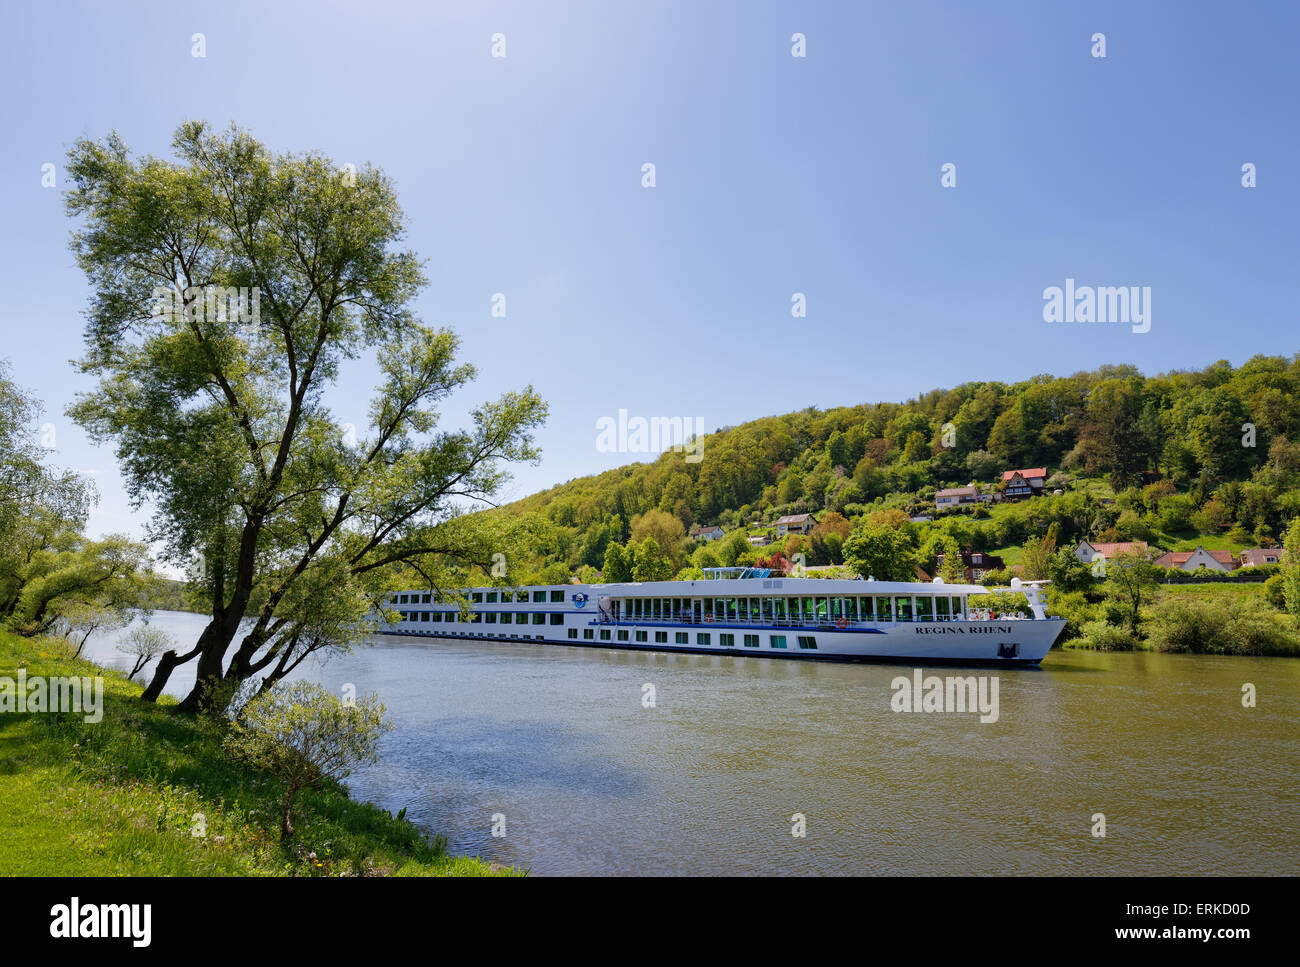 Hotel ship Regina Rheni on the Main river, Zimmern, near Marktheidenfeld, Rothenfels on the other side of the river, - Stock Image